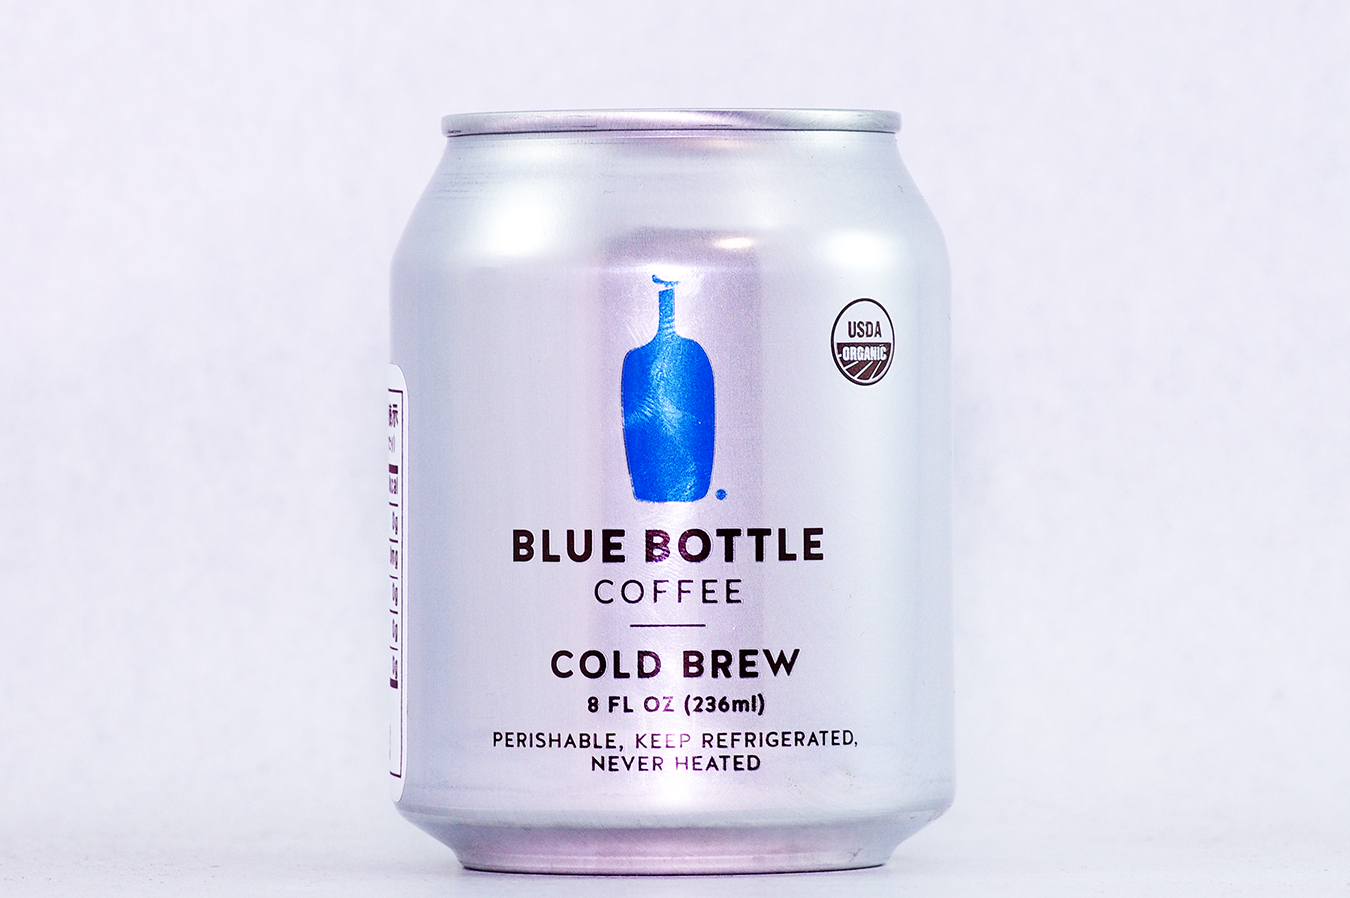 BLUE BOTTLE COFFEE COLD BREW